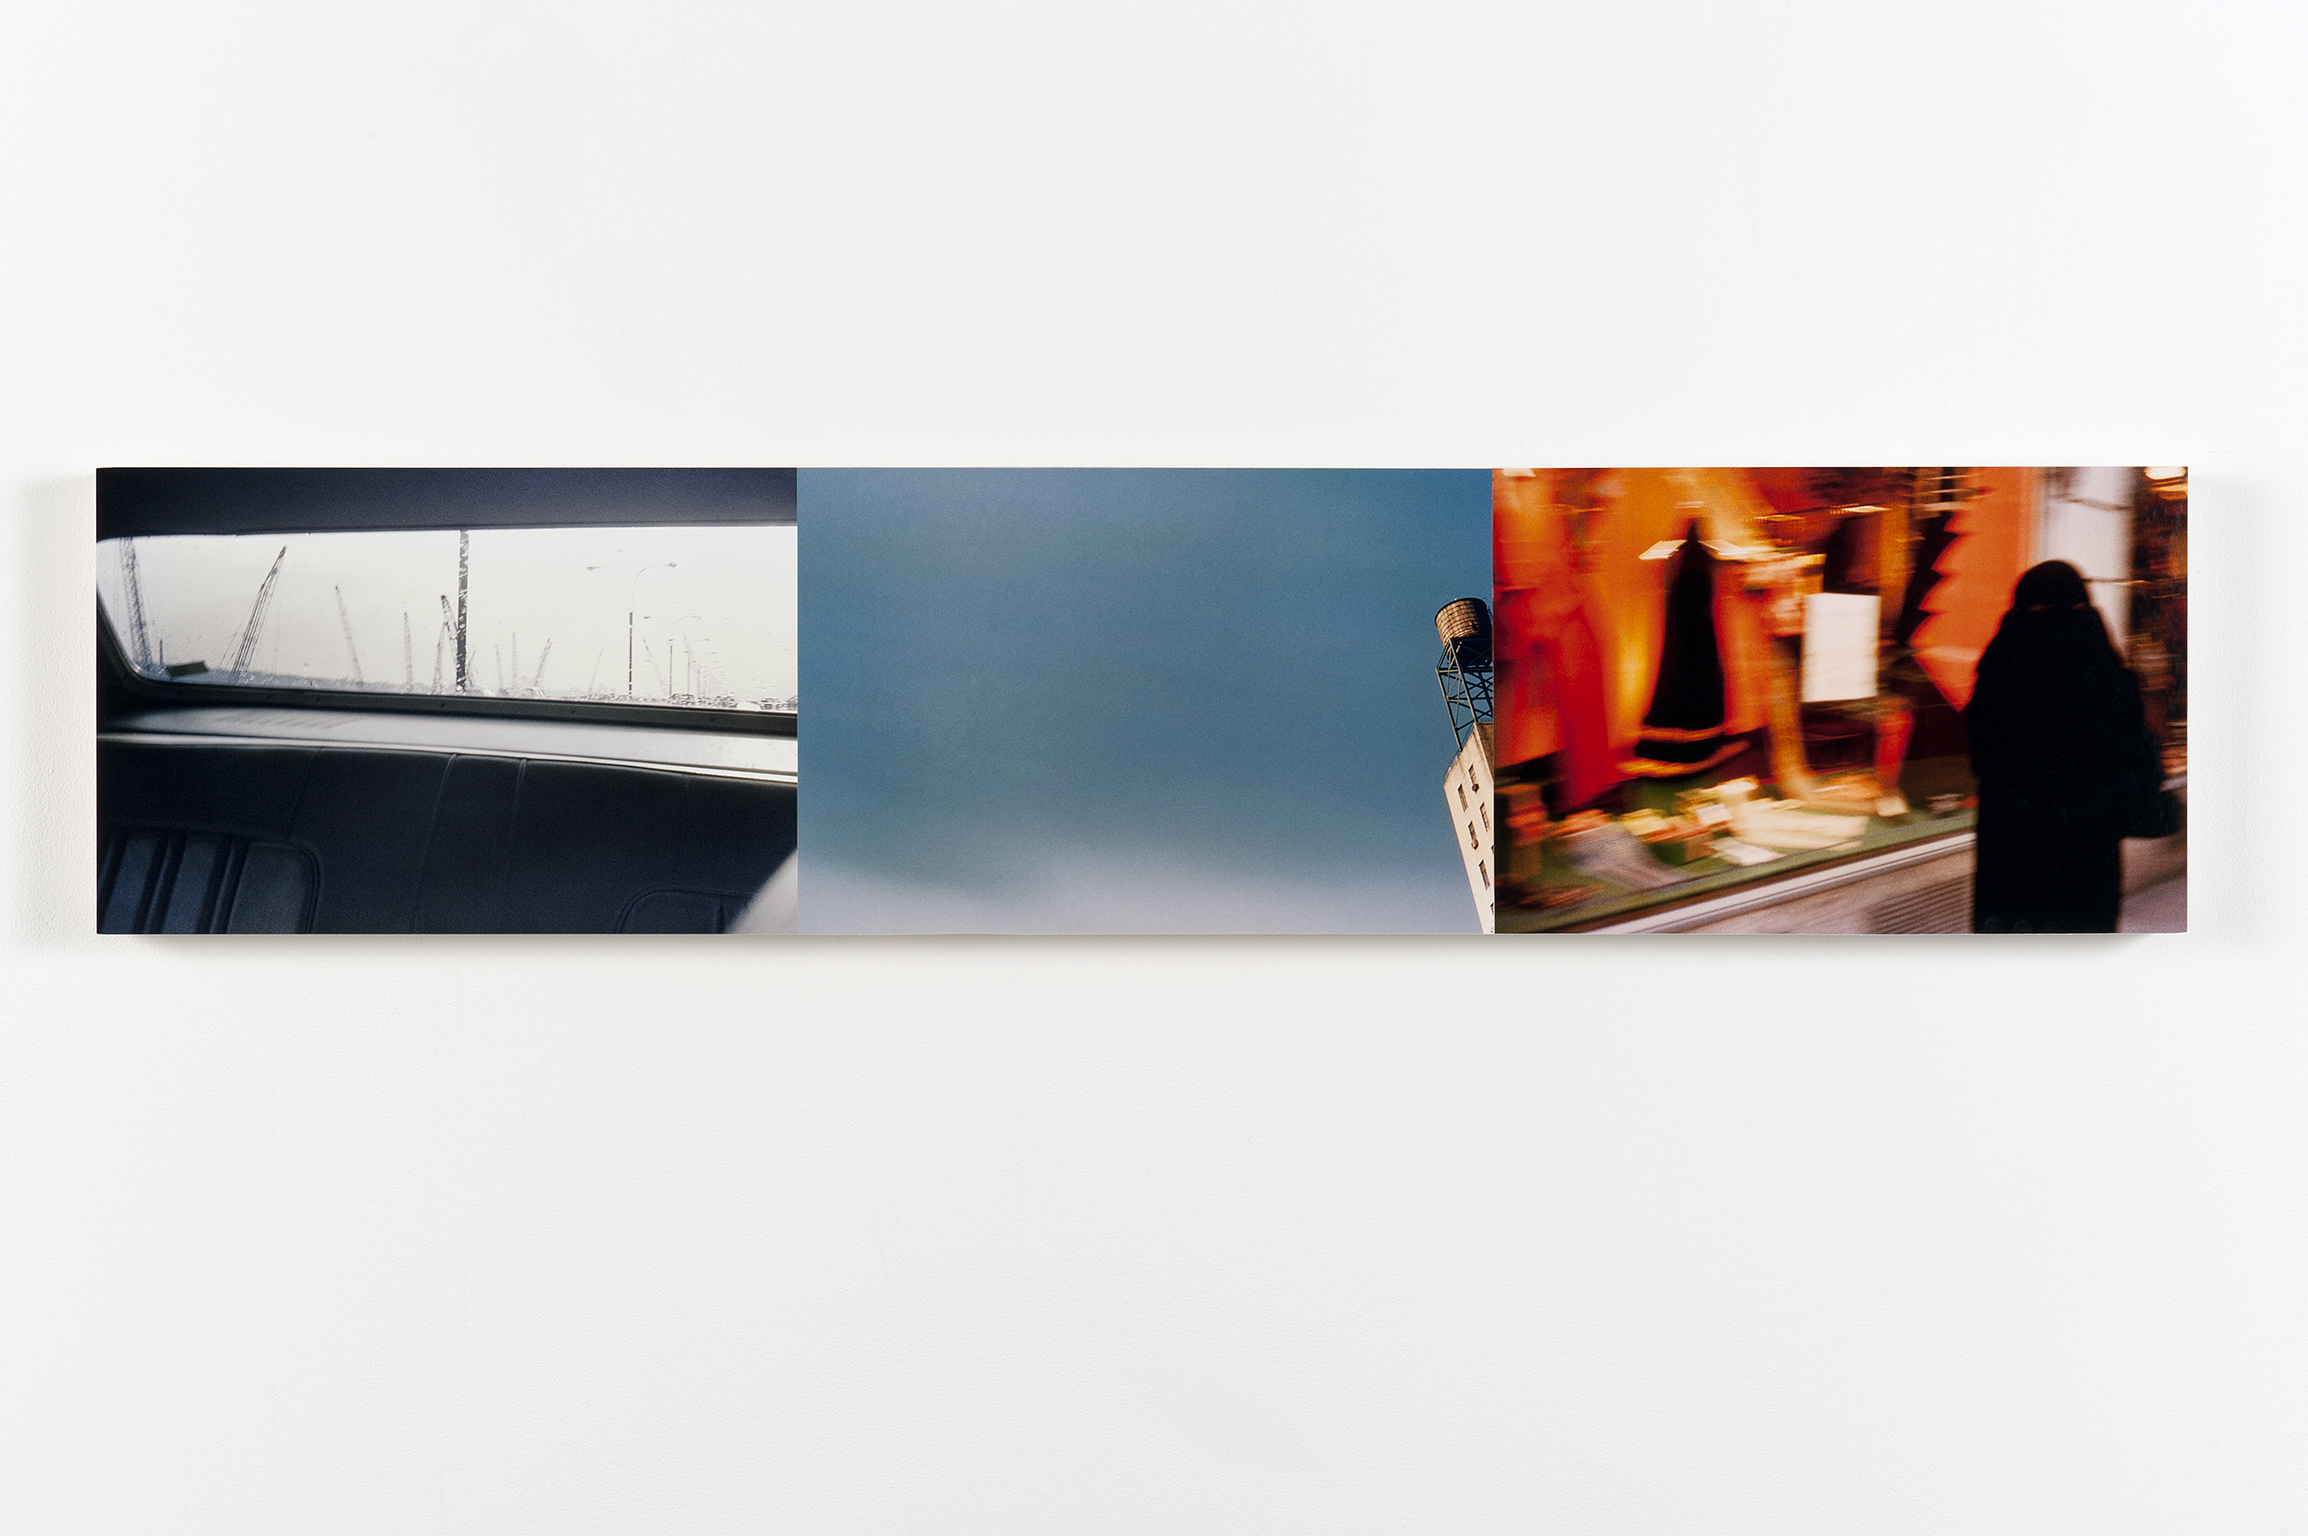 ​Robert Kleyn, New York Trilogy, 1973–2011, colour photographs, 11 x 49 in. (28 x 125 cm) by